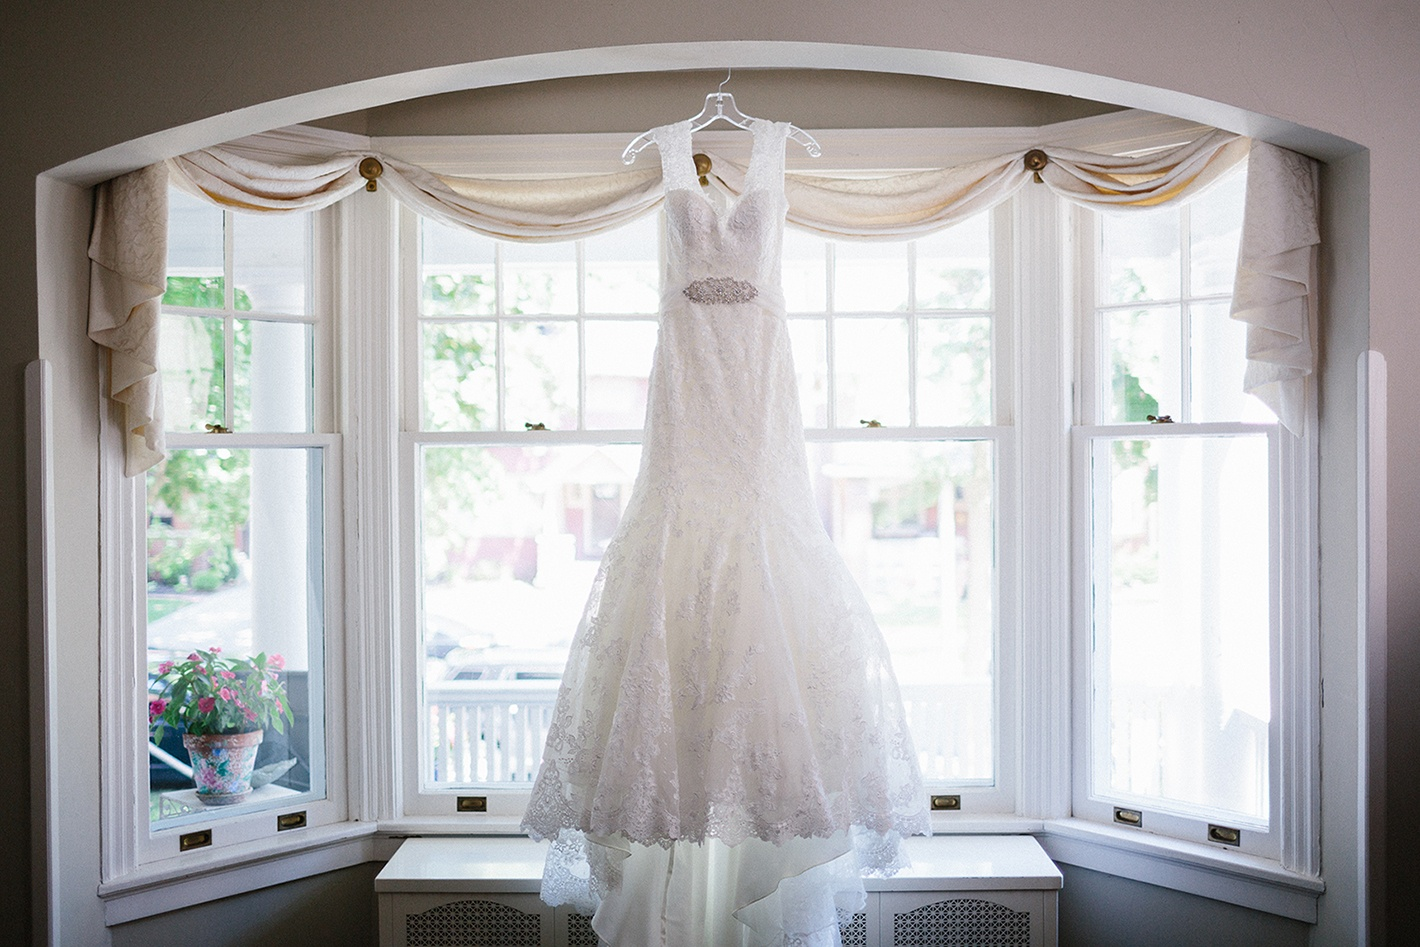 Hanging-Wedding-Dress-Blog-Wrinkle-Free.jpg